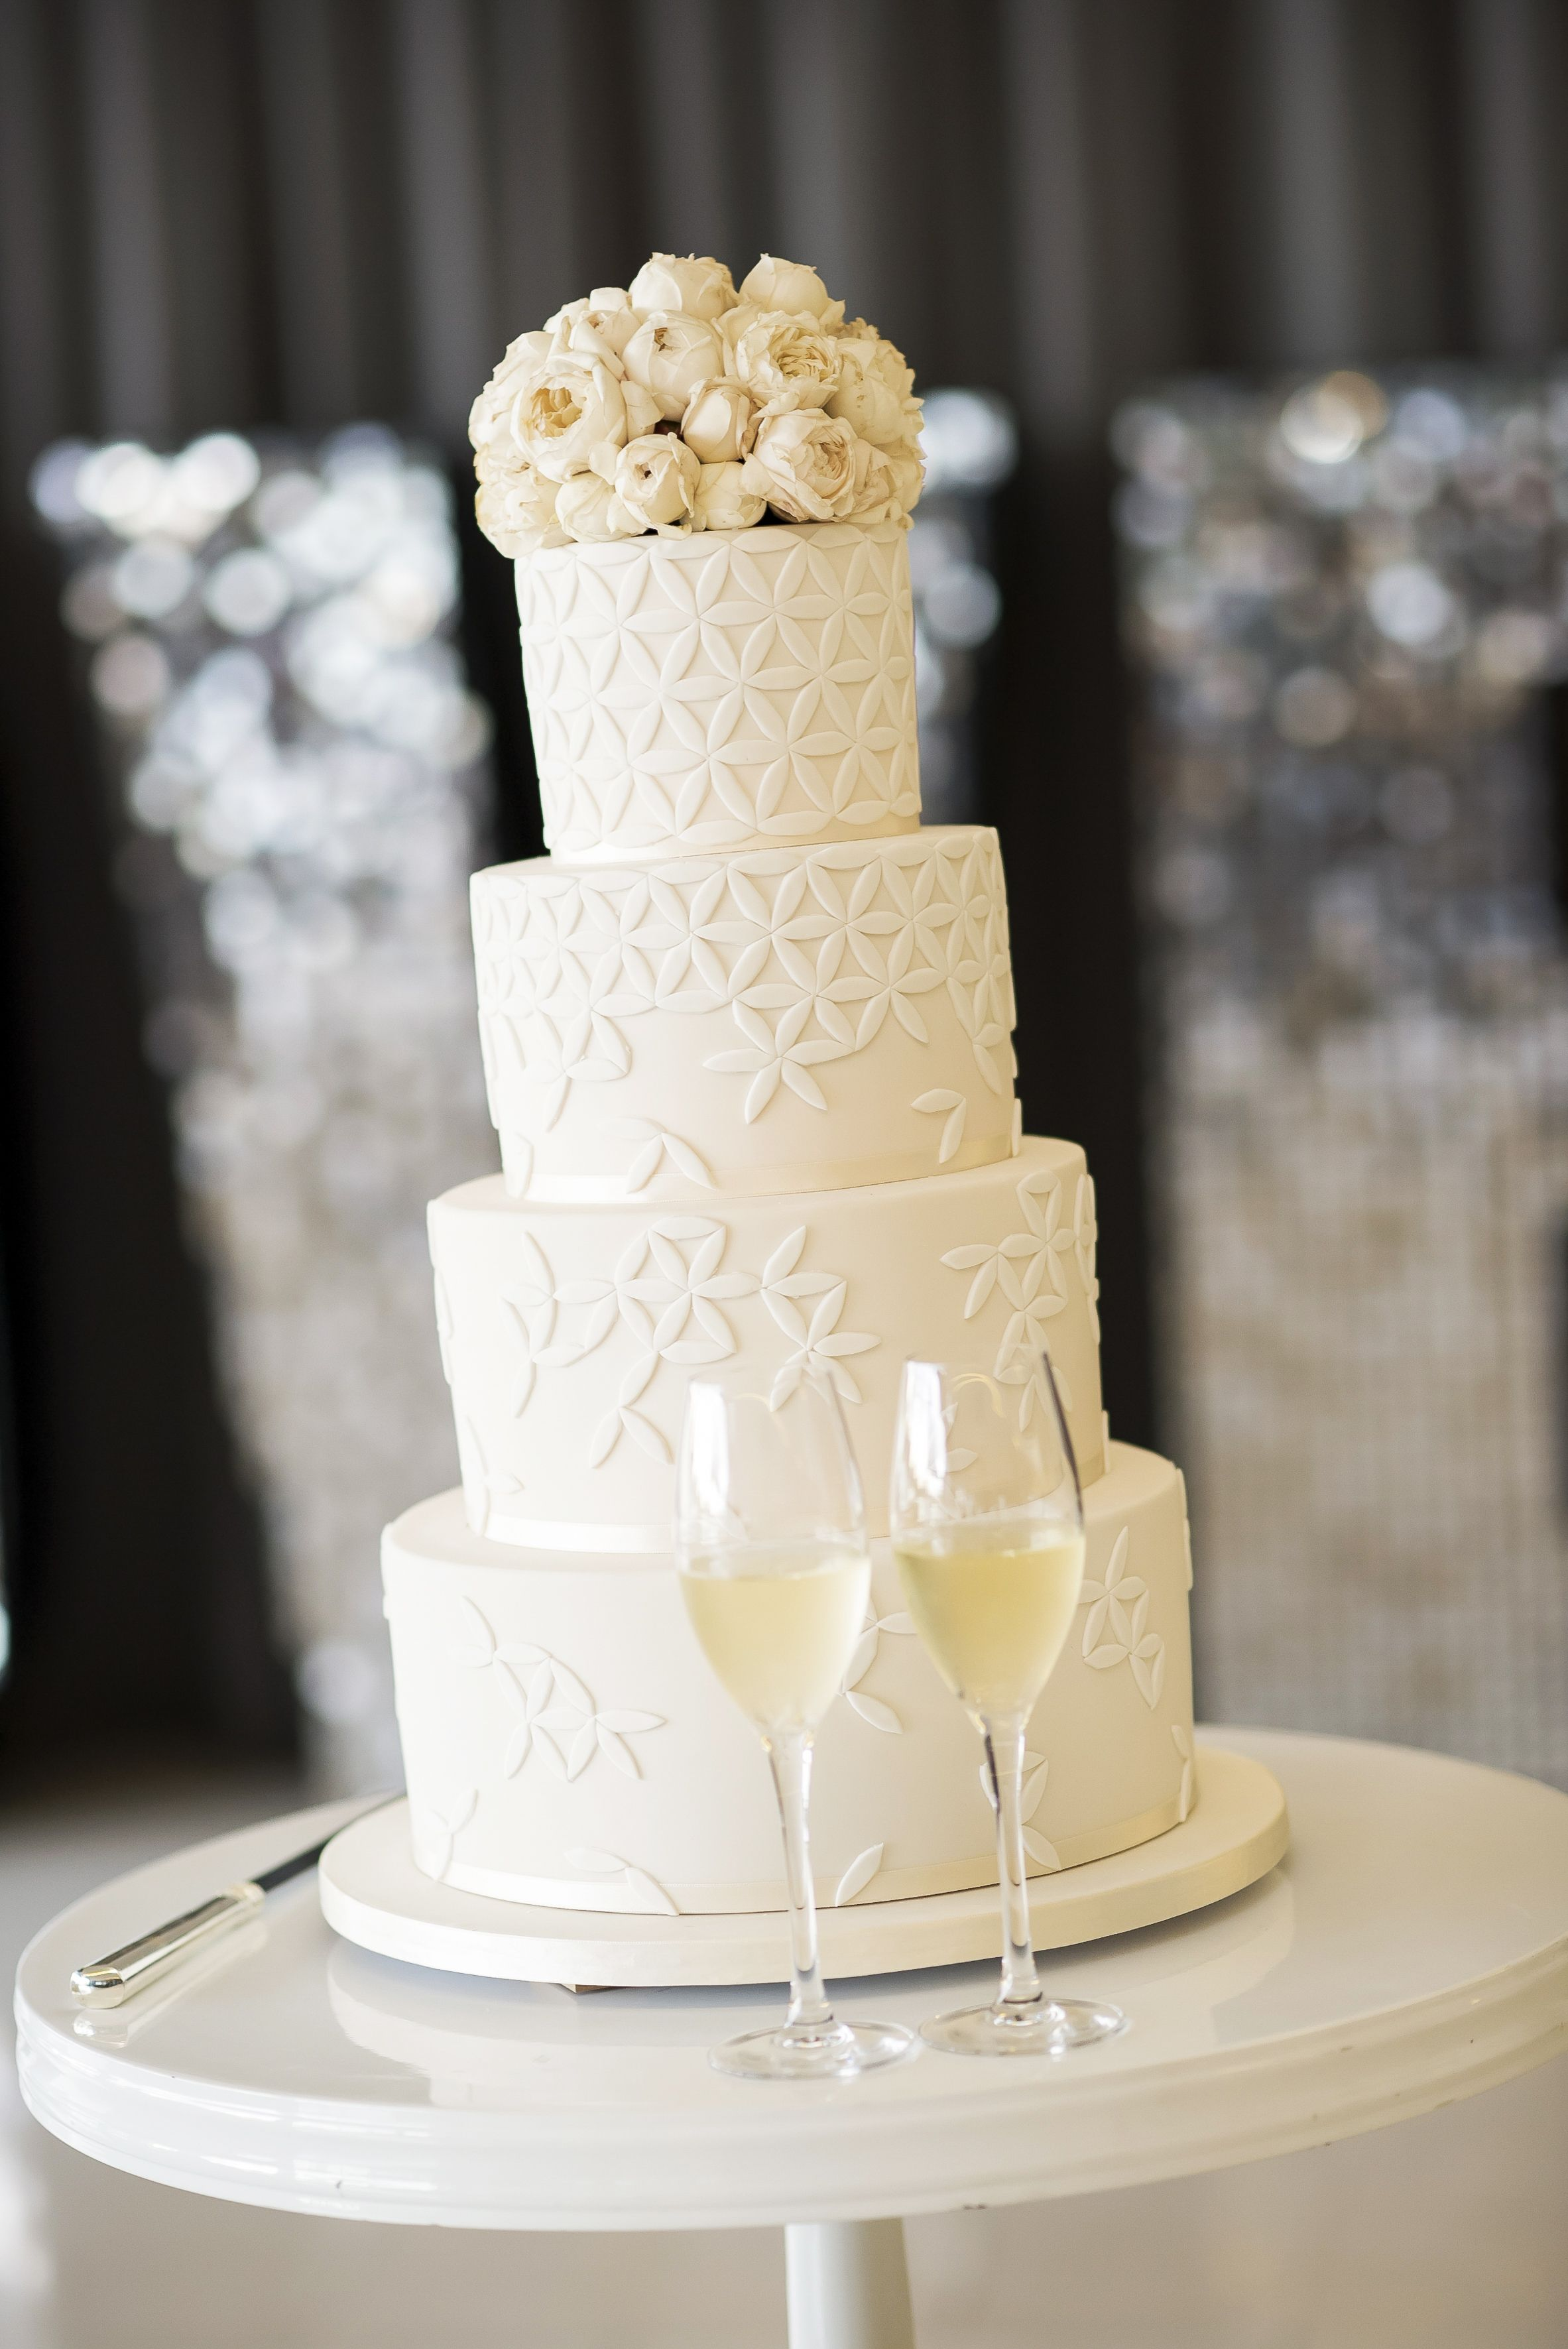 Wedding cake with white flora | itakeyou.co.uk